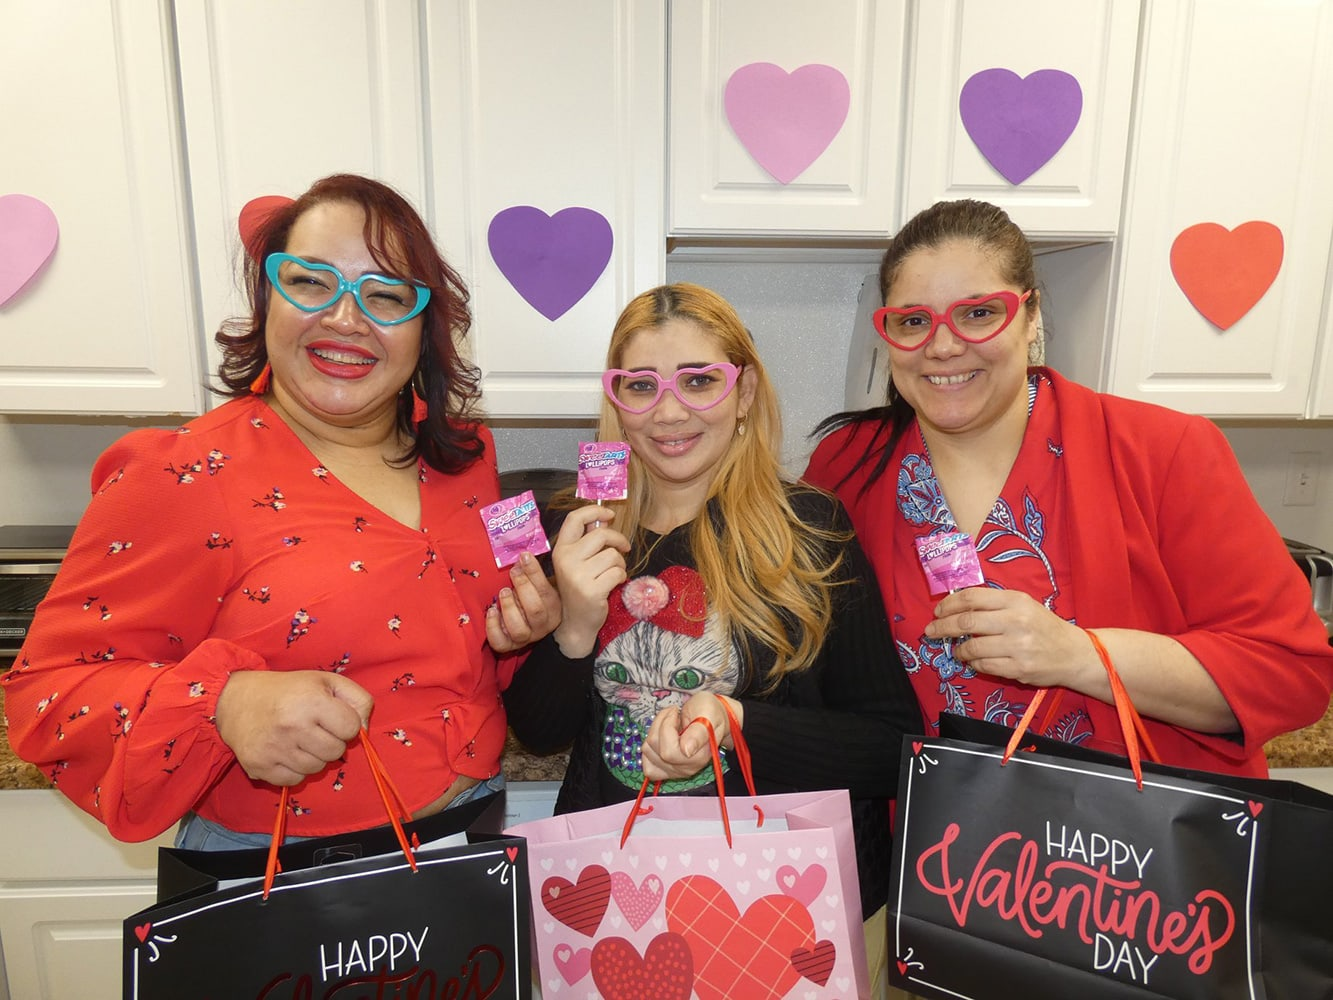 employees celebrate Valentines Day with gift bags, decorations and candy